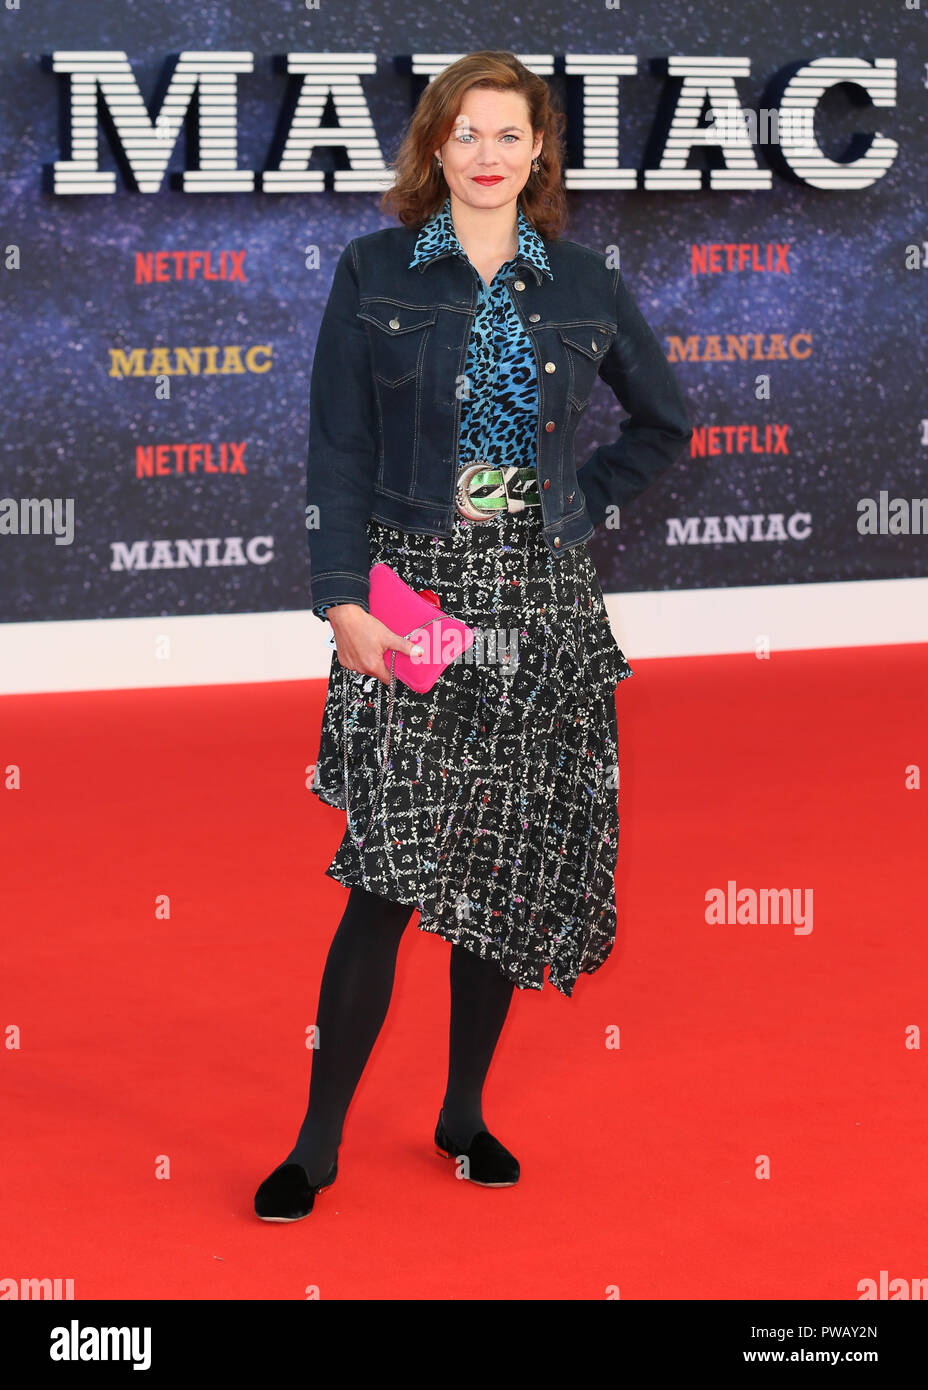 The World Premiere of 'Maniac' held at the BFI Southbank - Arrivals  Featuring: Jasmine Guinness Where: London, United Kingdom When: 13 Sep 2018 Credit: Mario Mitsis/WENN.com - Stock Image